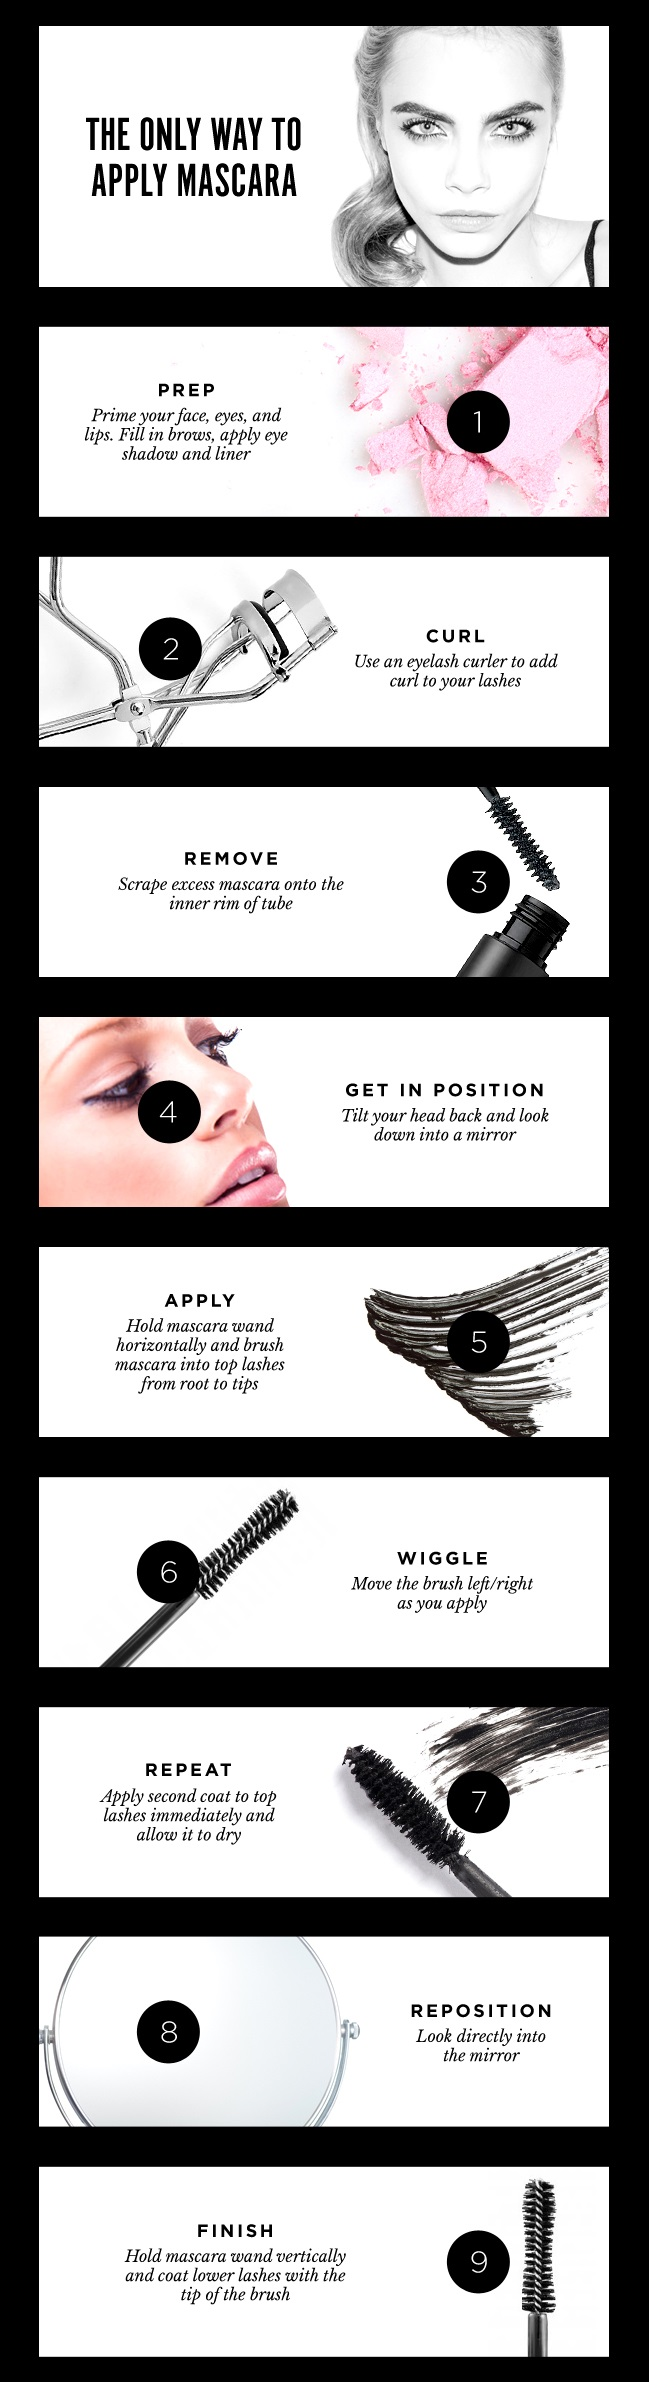 how-to-apply-mascara-perfectly-step-by-step-tutorial-28